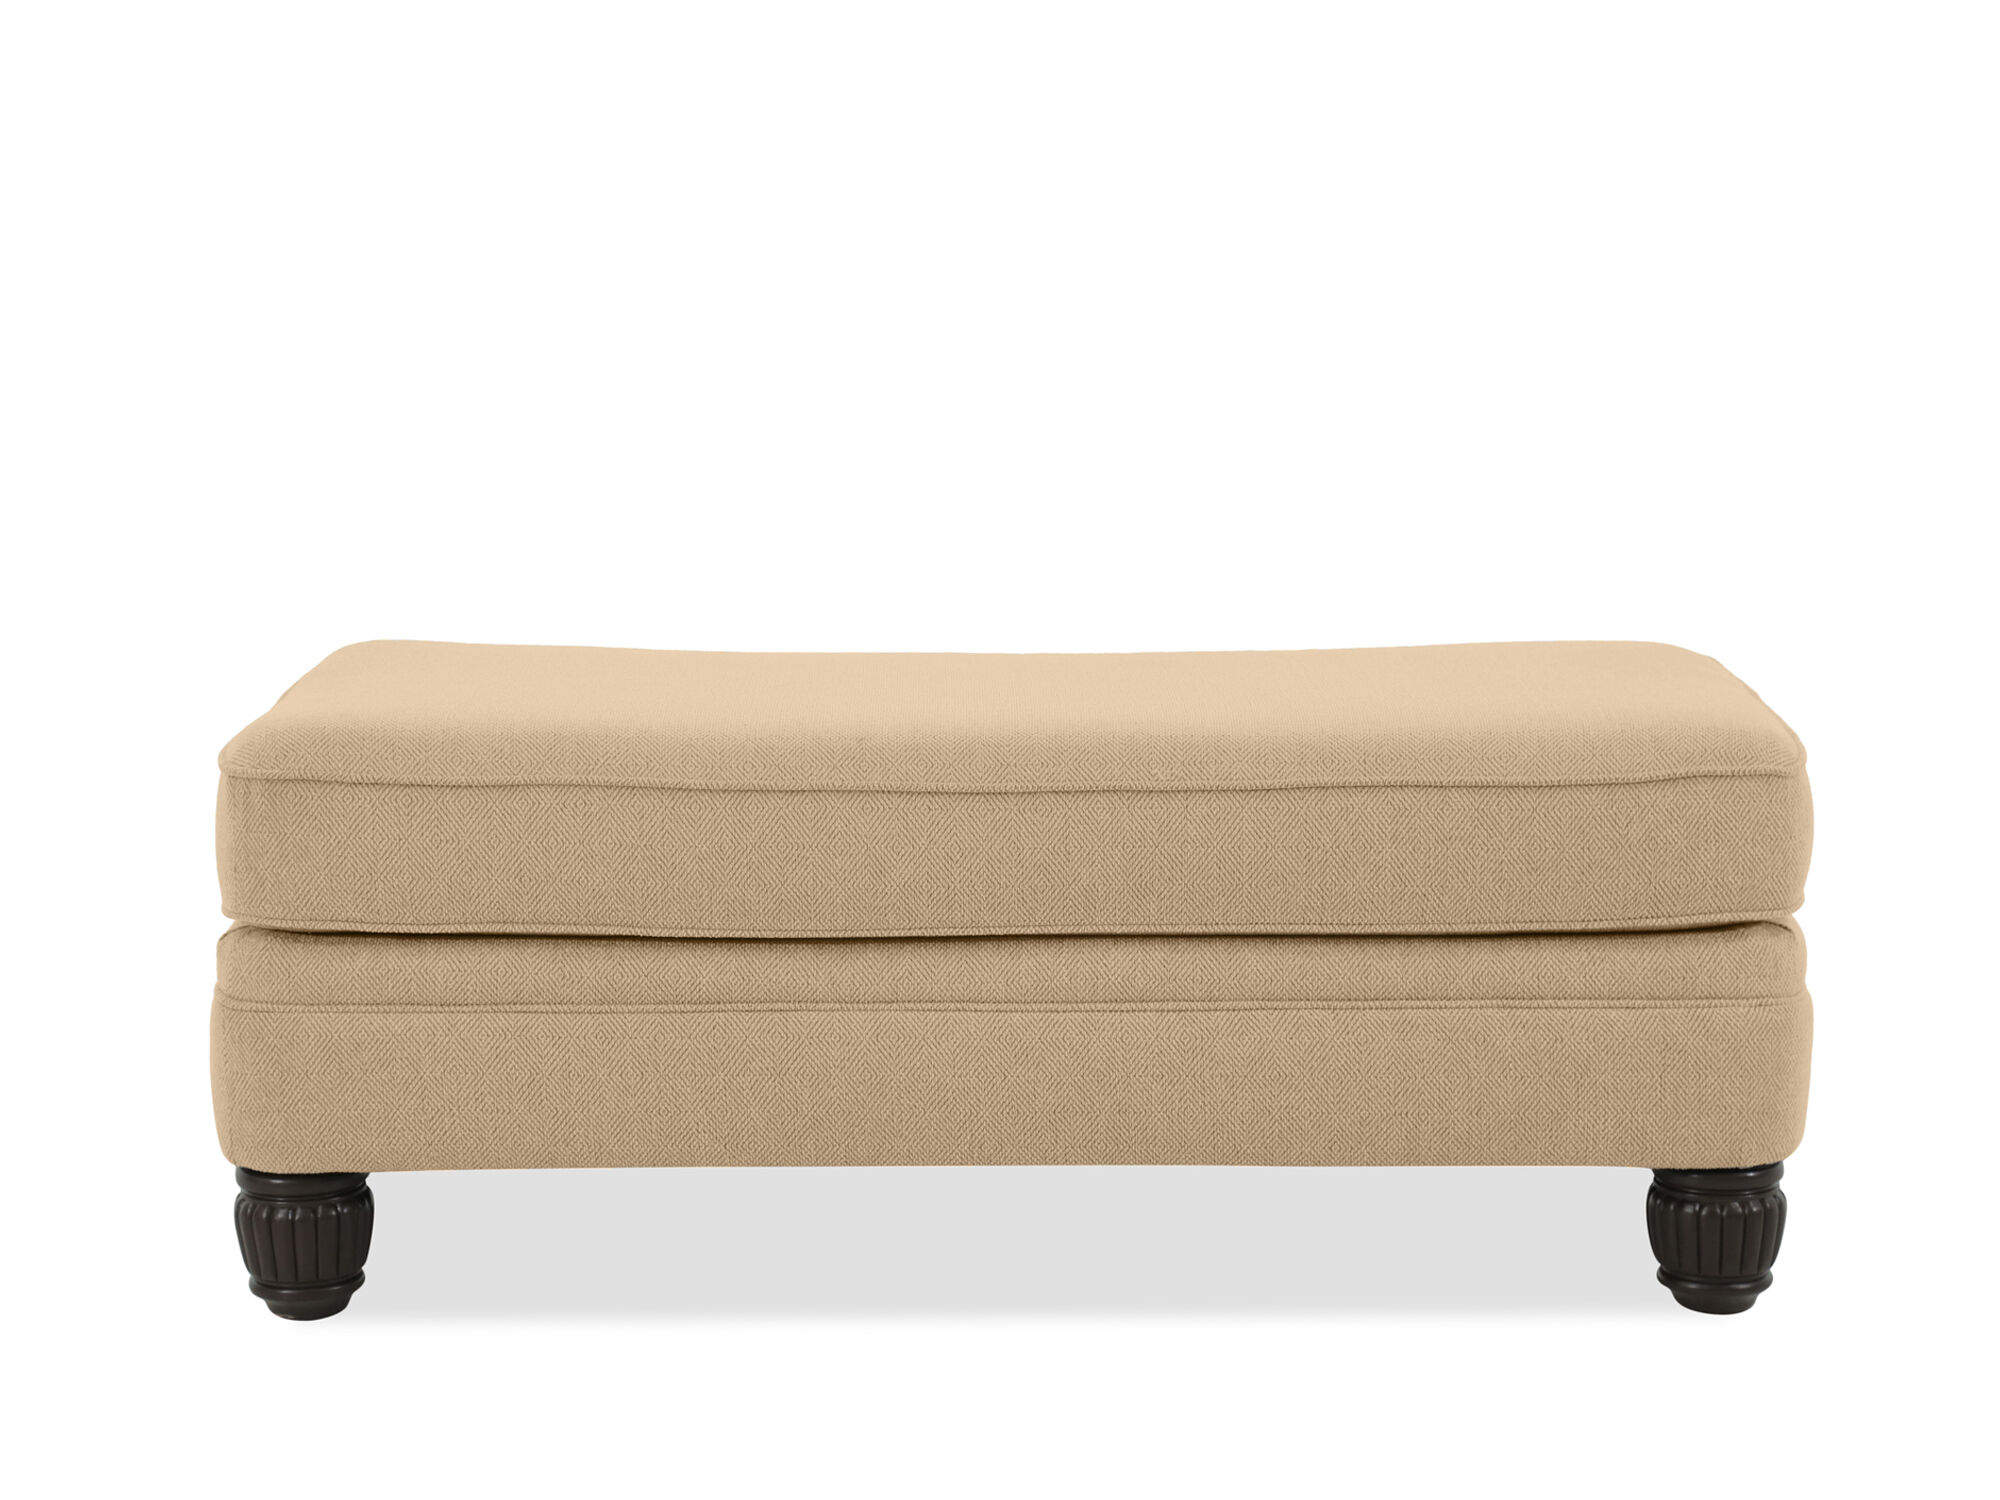 bernhardt walsh sofa home decorators collection table diamond textured casual 52 quot ottoman in beige mathis